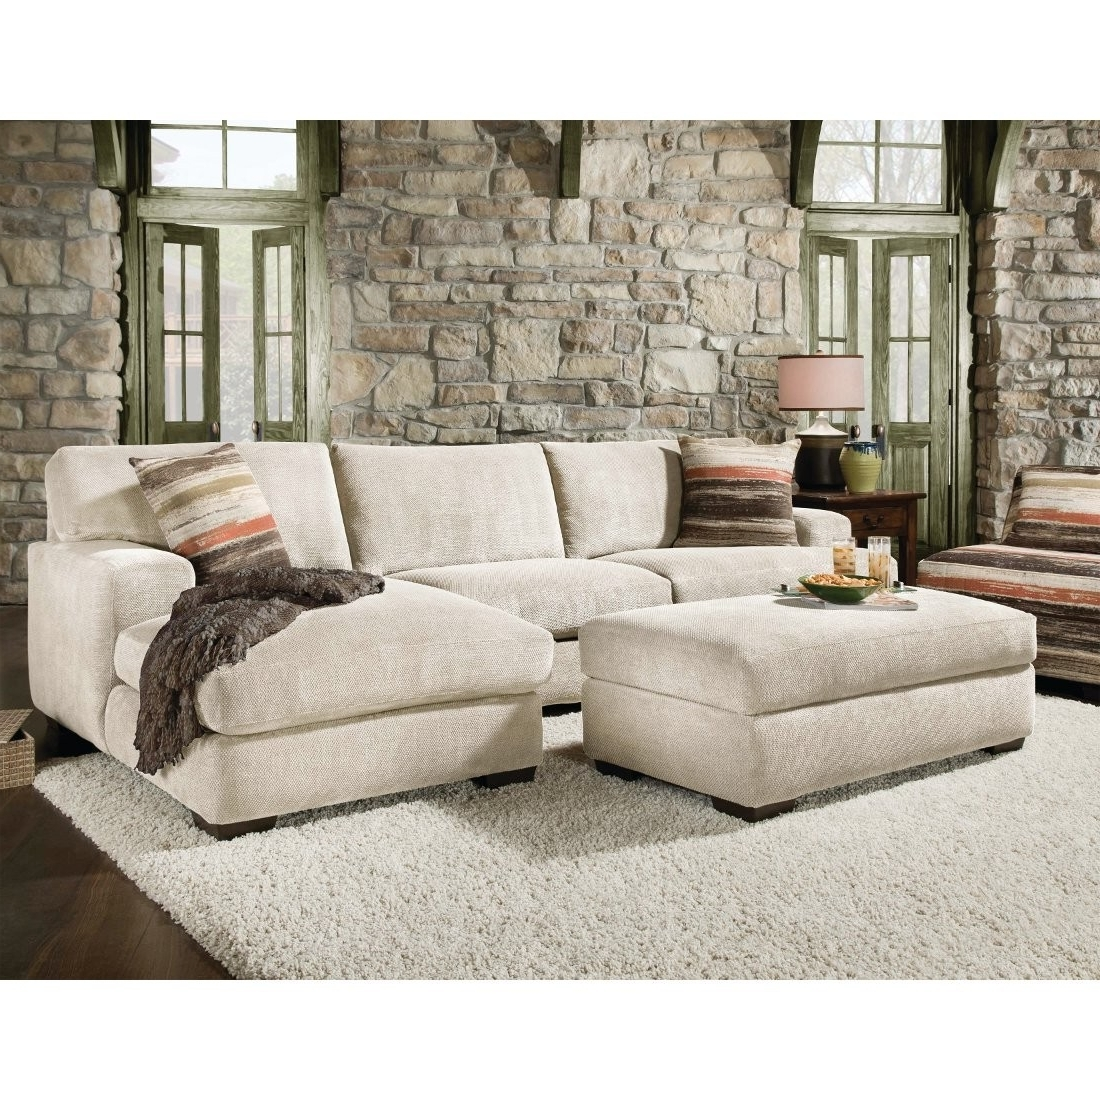 Newest Corinthian Mead Sectional Sofa Piece (View 6 of 15)